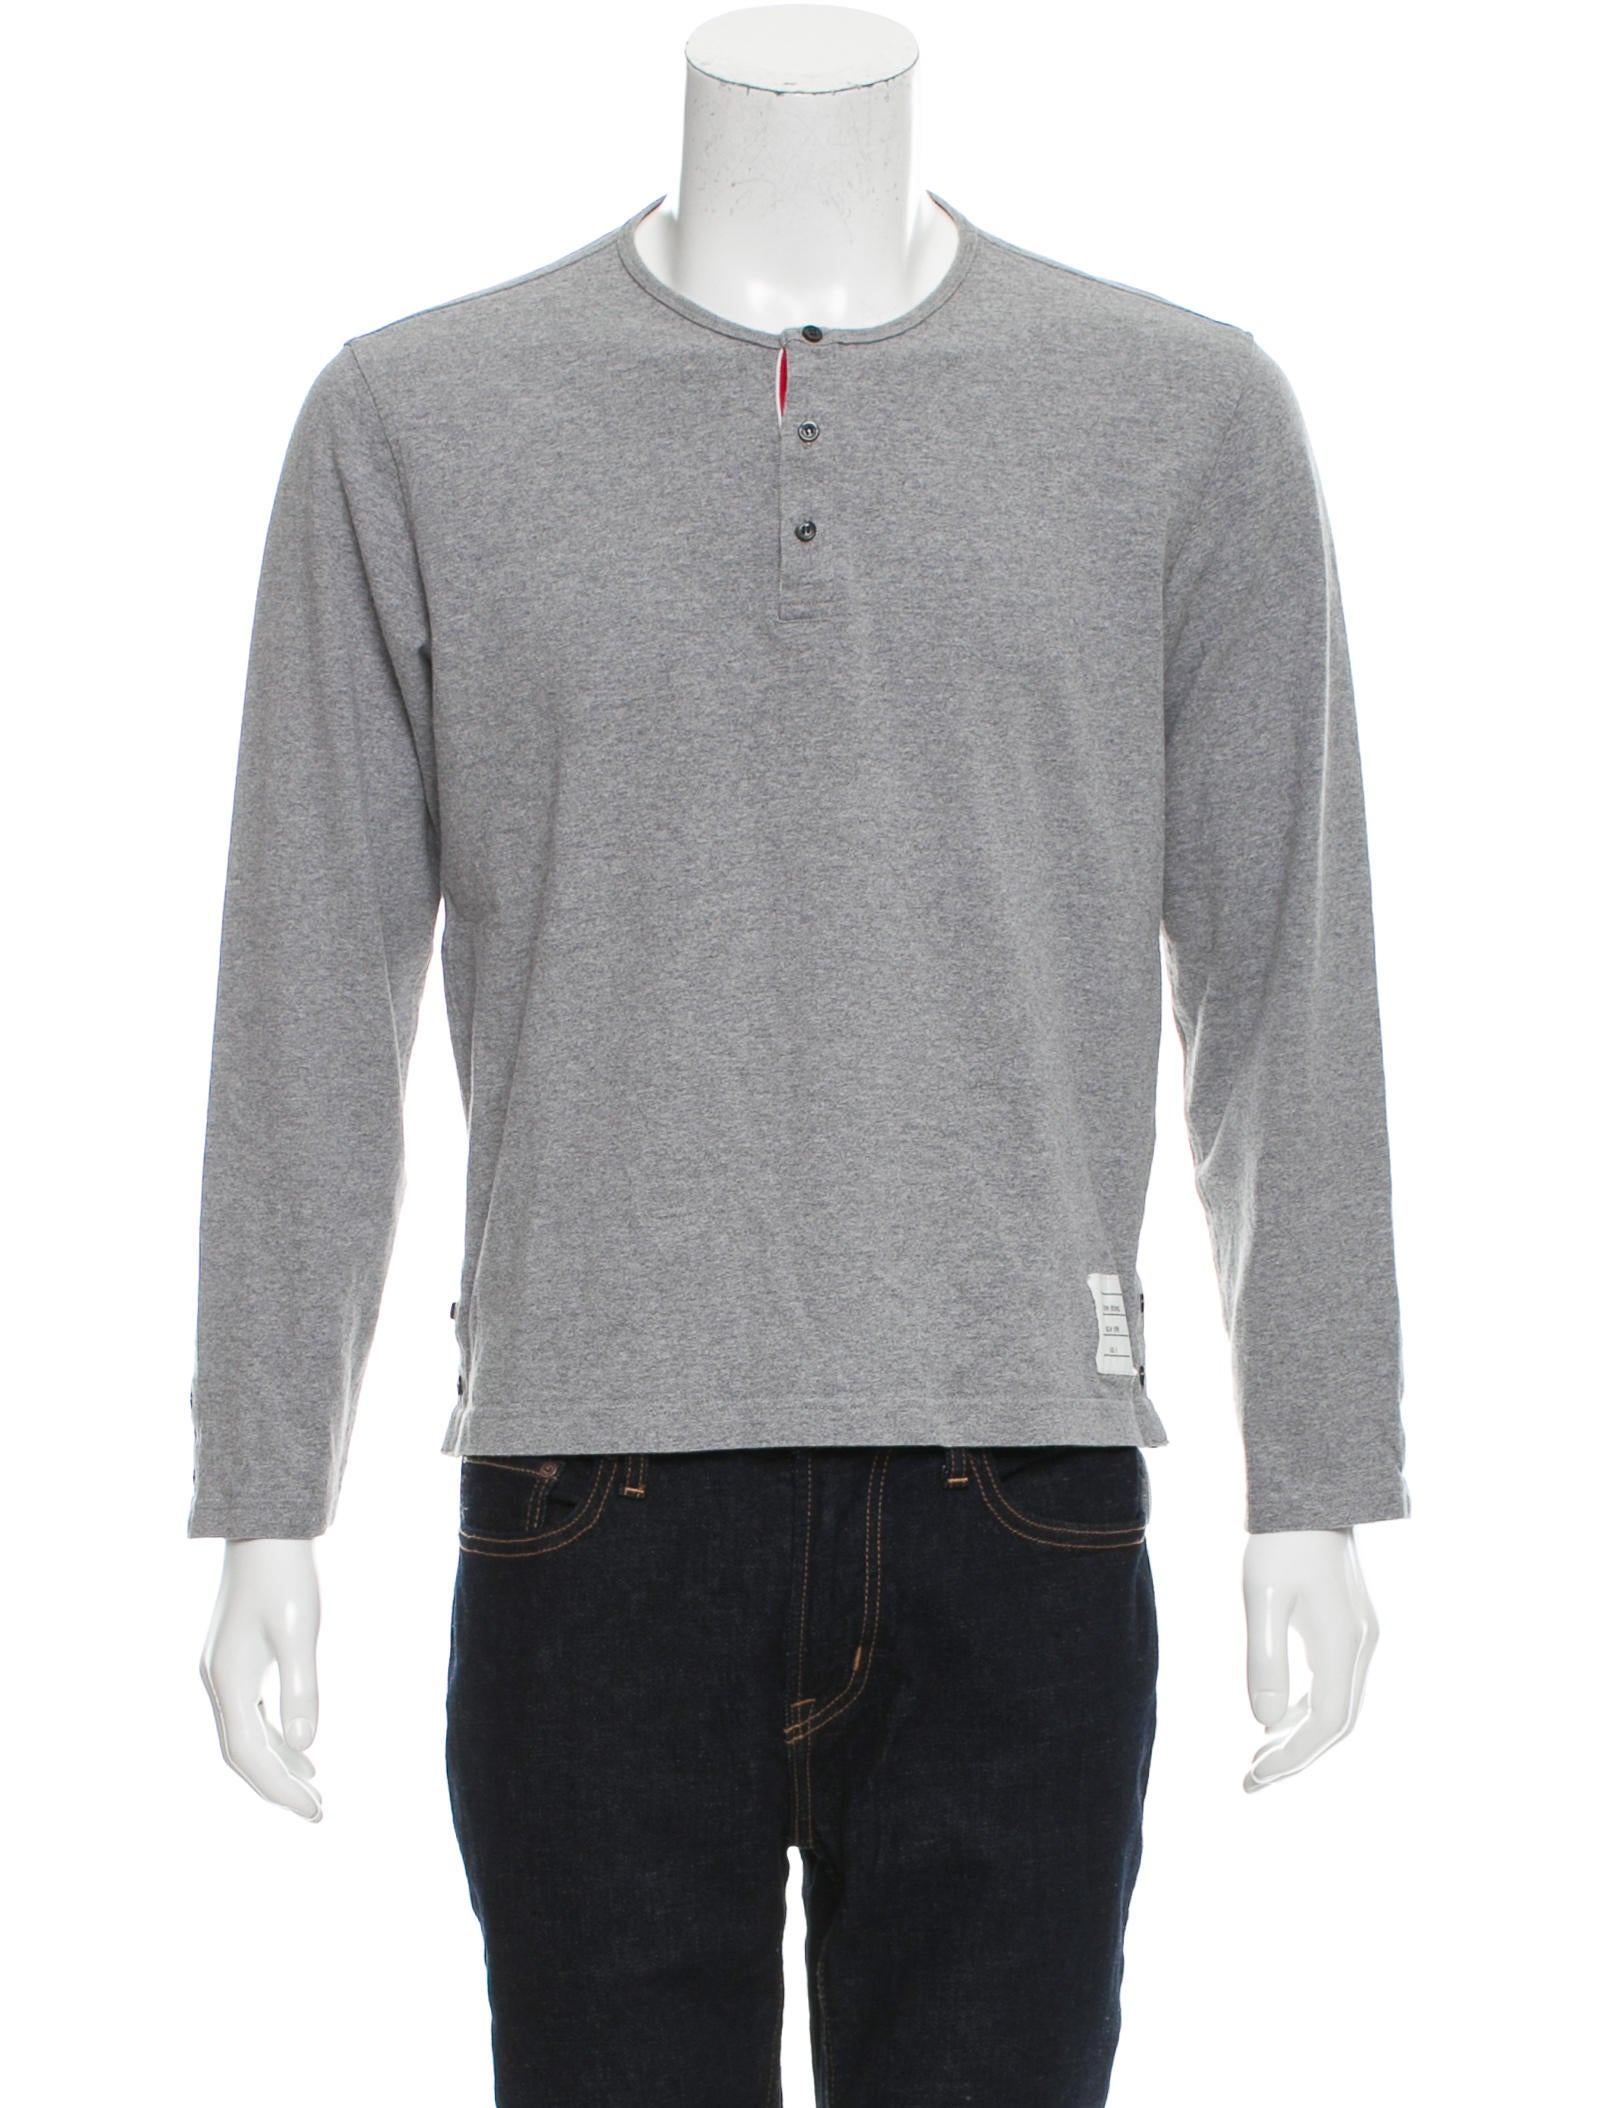 Thom browne crew neck henley t shirt clothing tho22025 for Thom browne t shirt